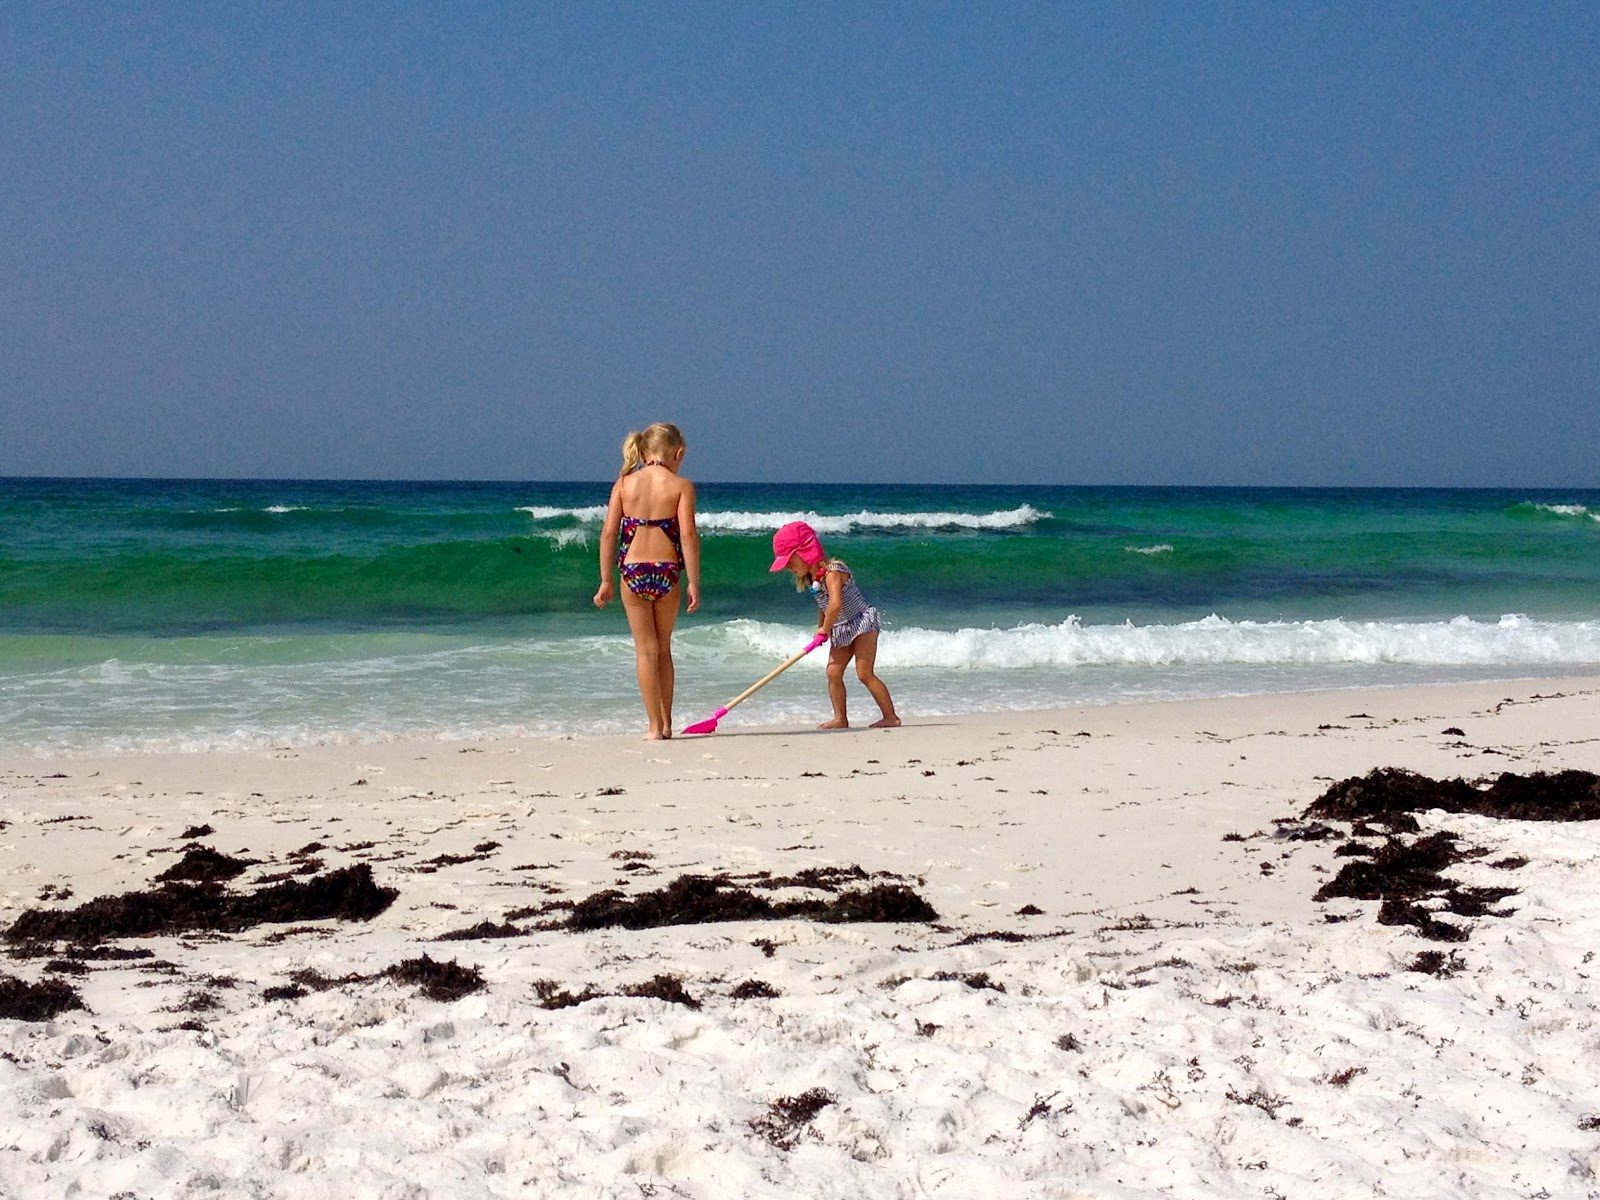 conner family: Our Trip to Destin- Summer 2012